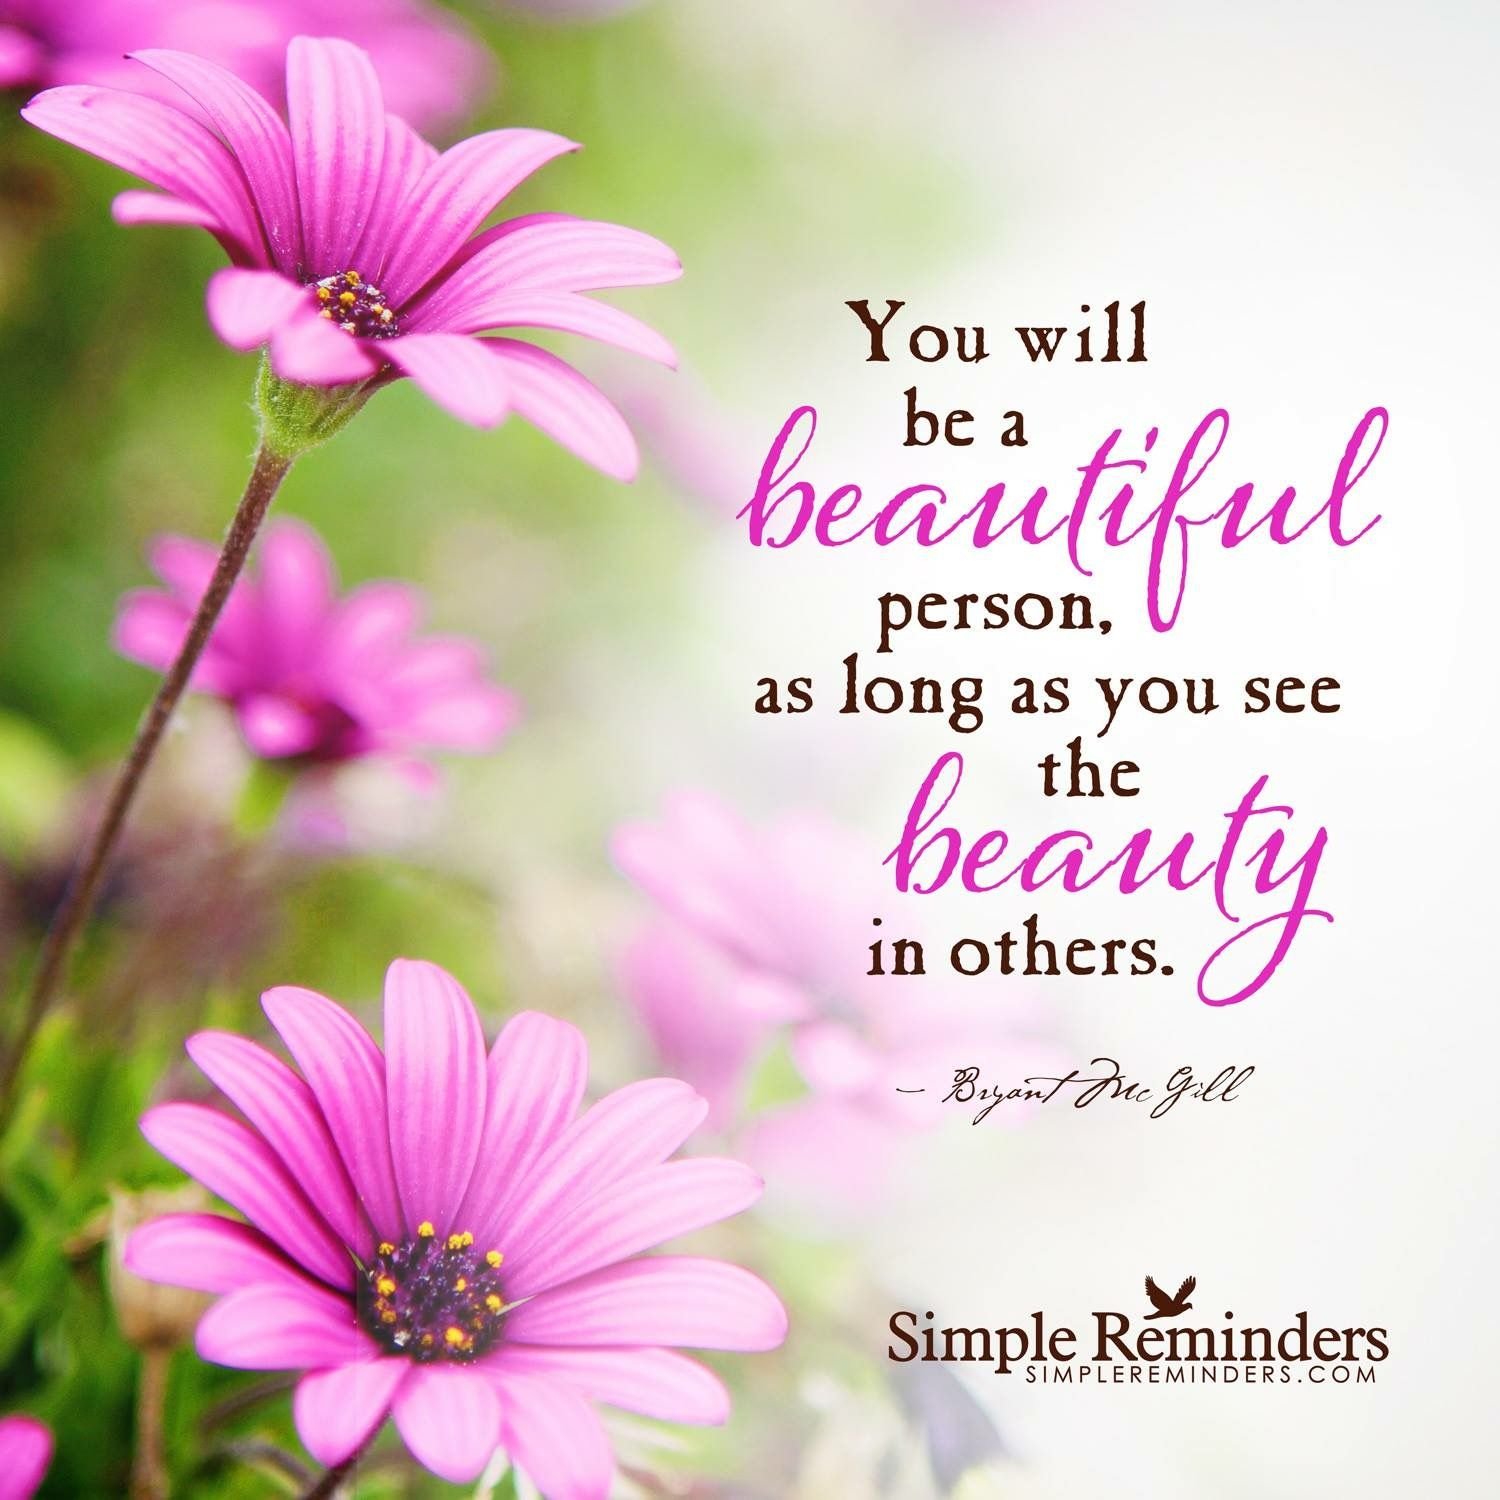 Pin by werkitall on inspiration pinterest king jesus and lord bryantmcgill you will be a beautiful person as long as you see the beauty in others dhlflorist Images